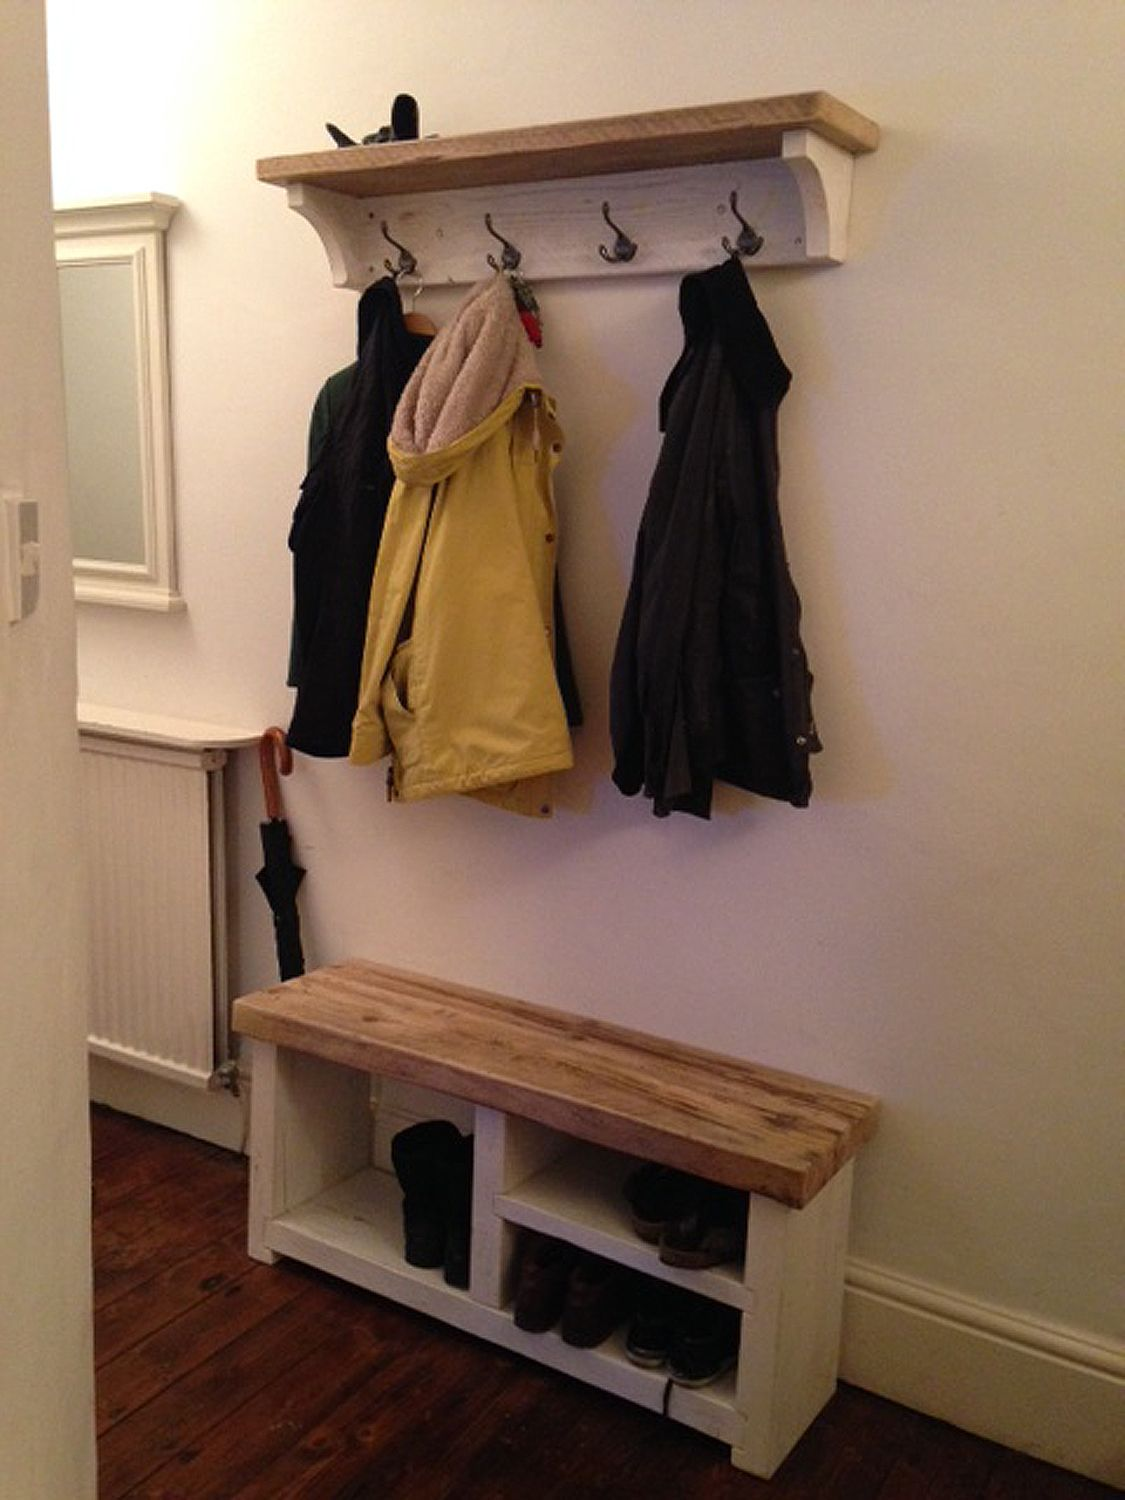 Cottage Style Reclaimed Wood Coat And Shoe Rack Combo Www Reclaimedbespoke Co Uk Coat And Shoe Rack Coat Rack Bench Diy Coat Rack